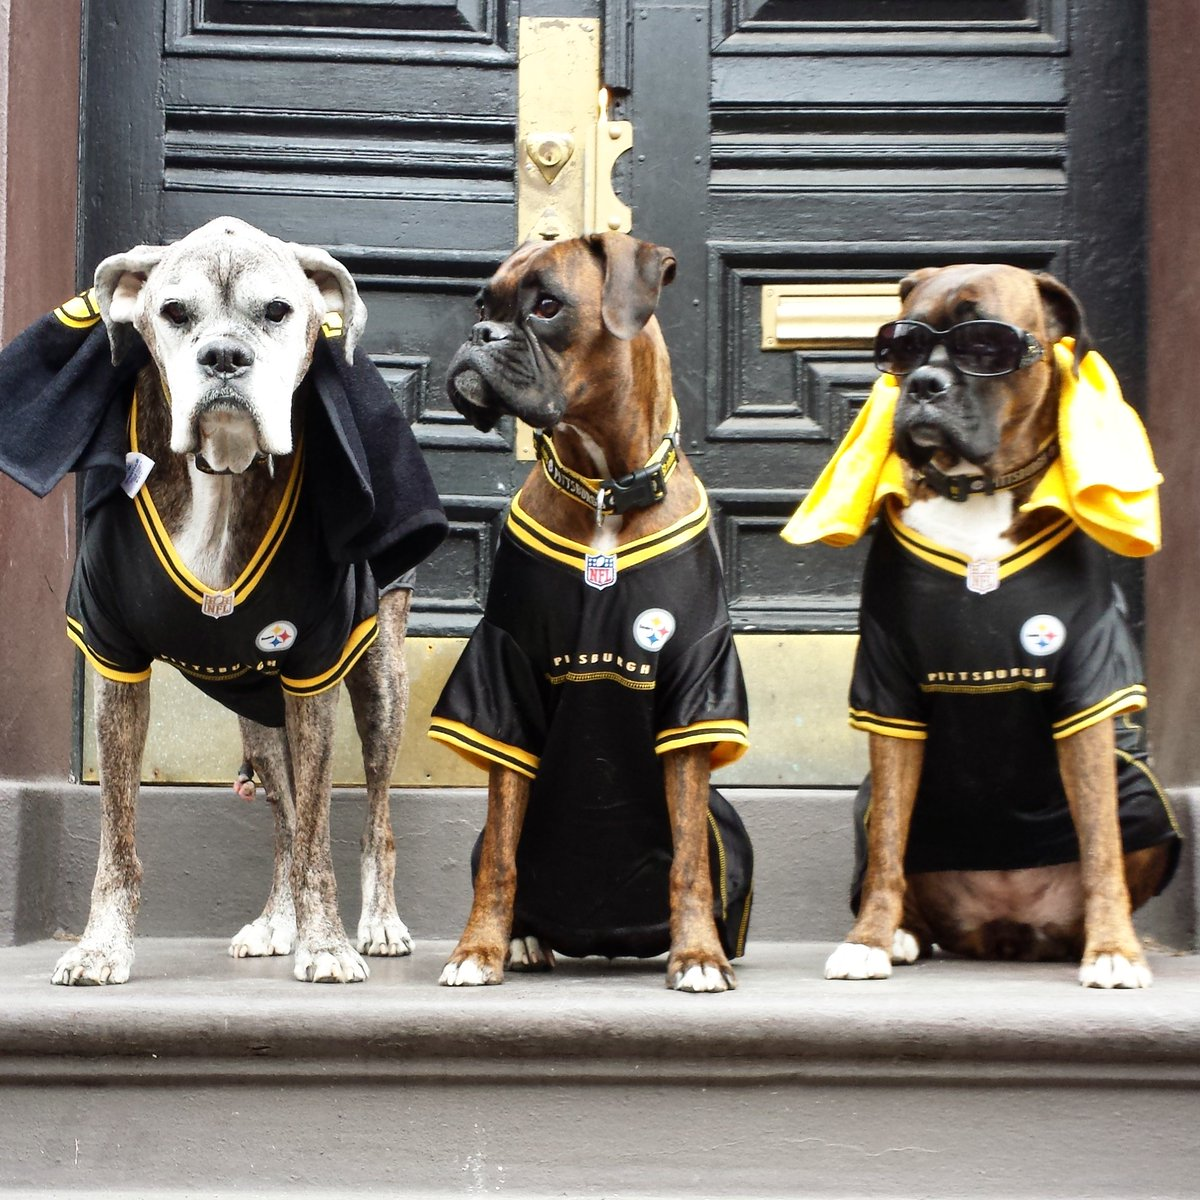 Baddest #Steelers Fans out there! (L-R) Kota is @_BigBen7 , Donut is @DeAngeloRB & Tana is @jharrison9292 #HereWeGo https://t.co/FAmKIV67cA